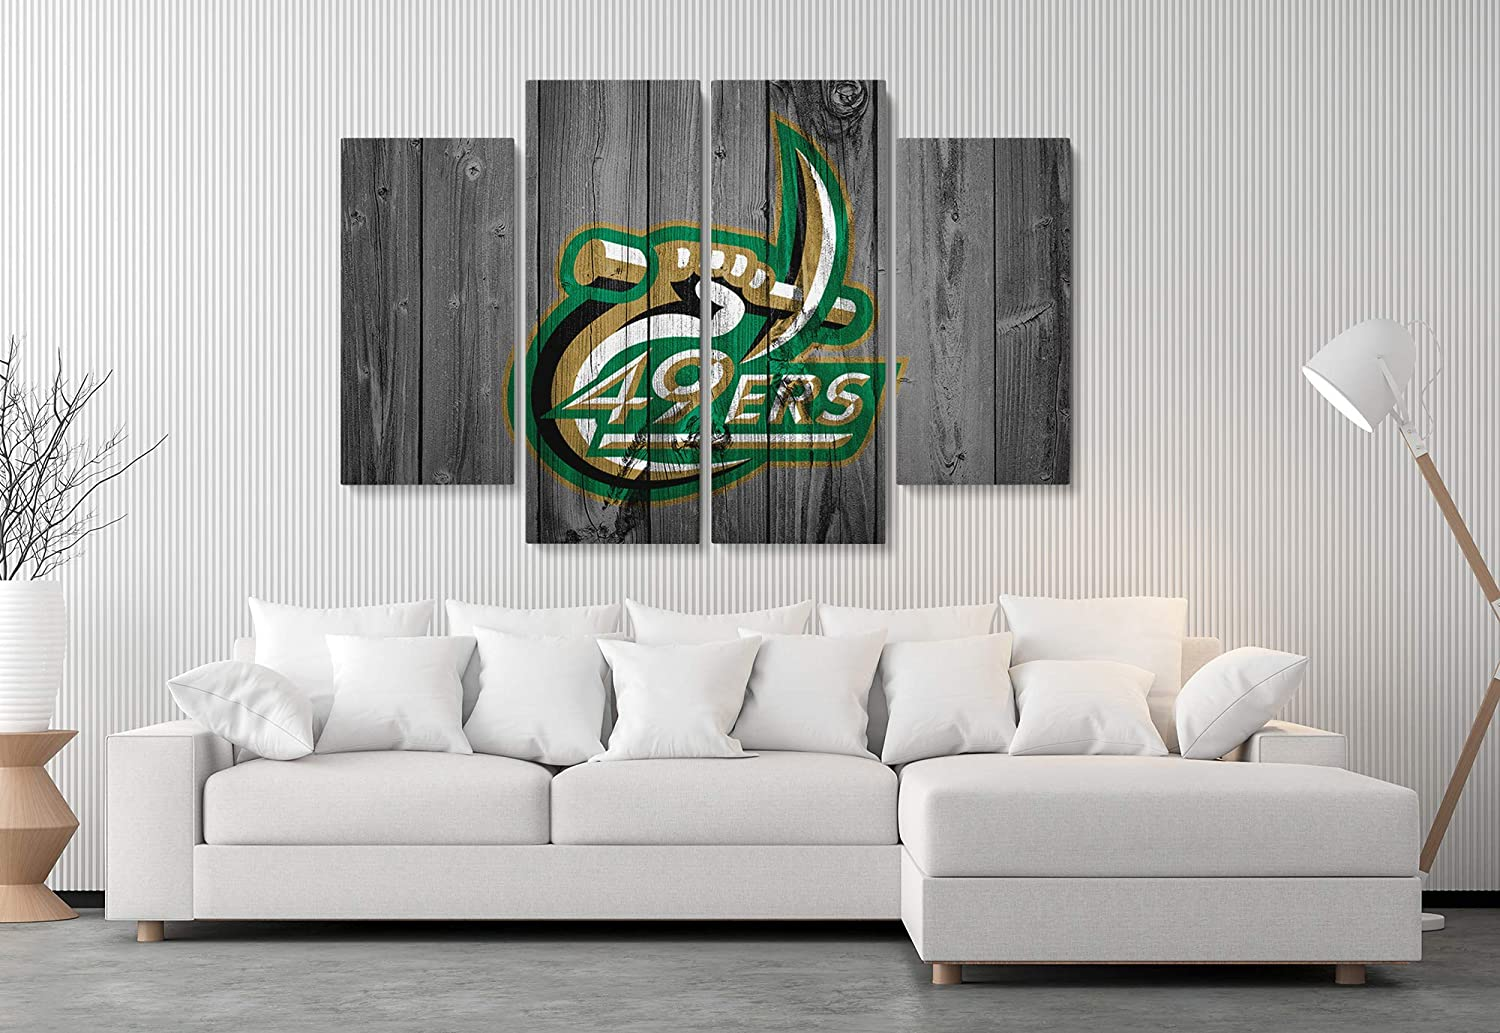 UNC Charlotte 49ERS American Football College University Team Art Decor Wall Poster Canvas Print. Ready to Hang. Made in USA (4 Piece Medium)